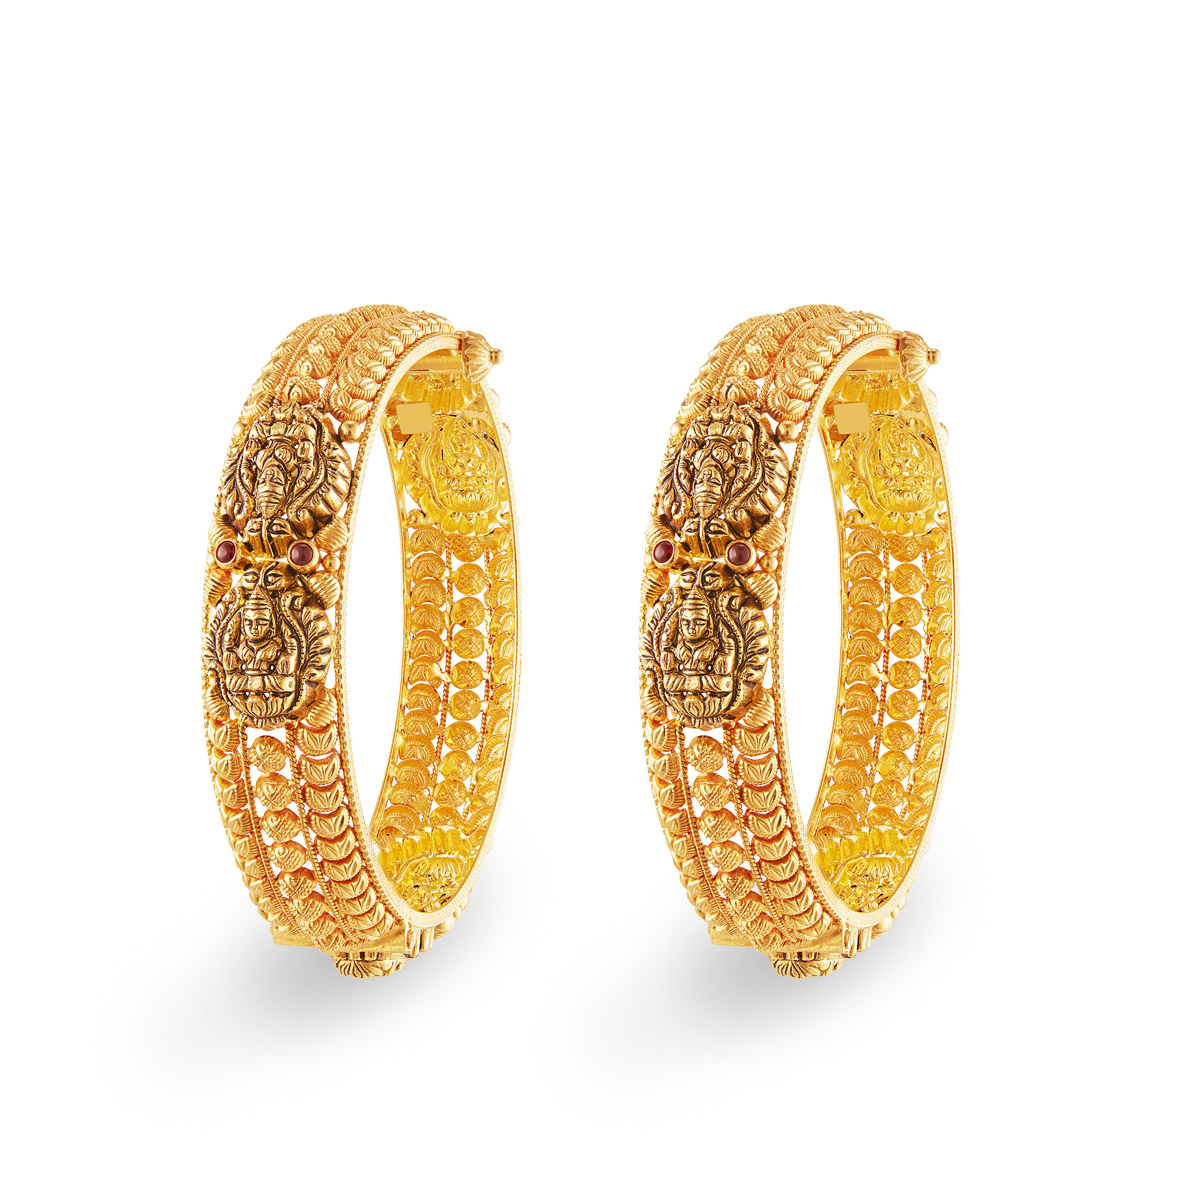 Vibrant Pair of Bangles